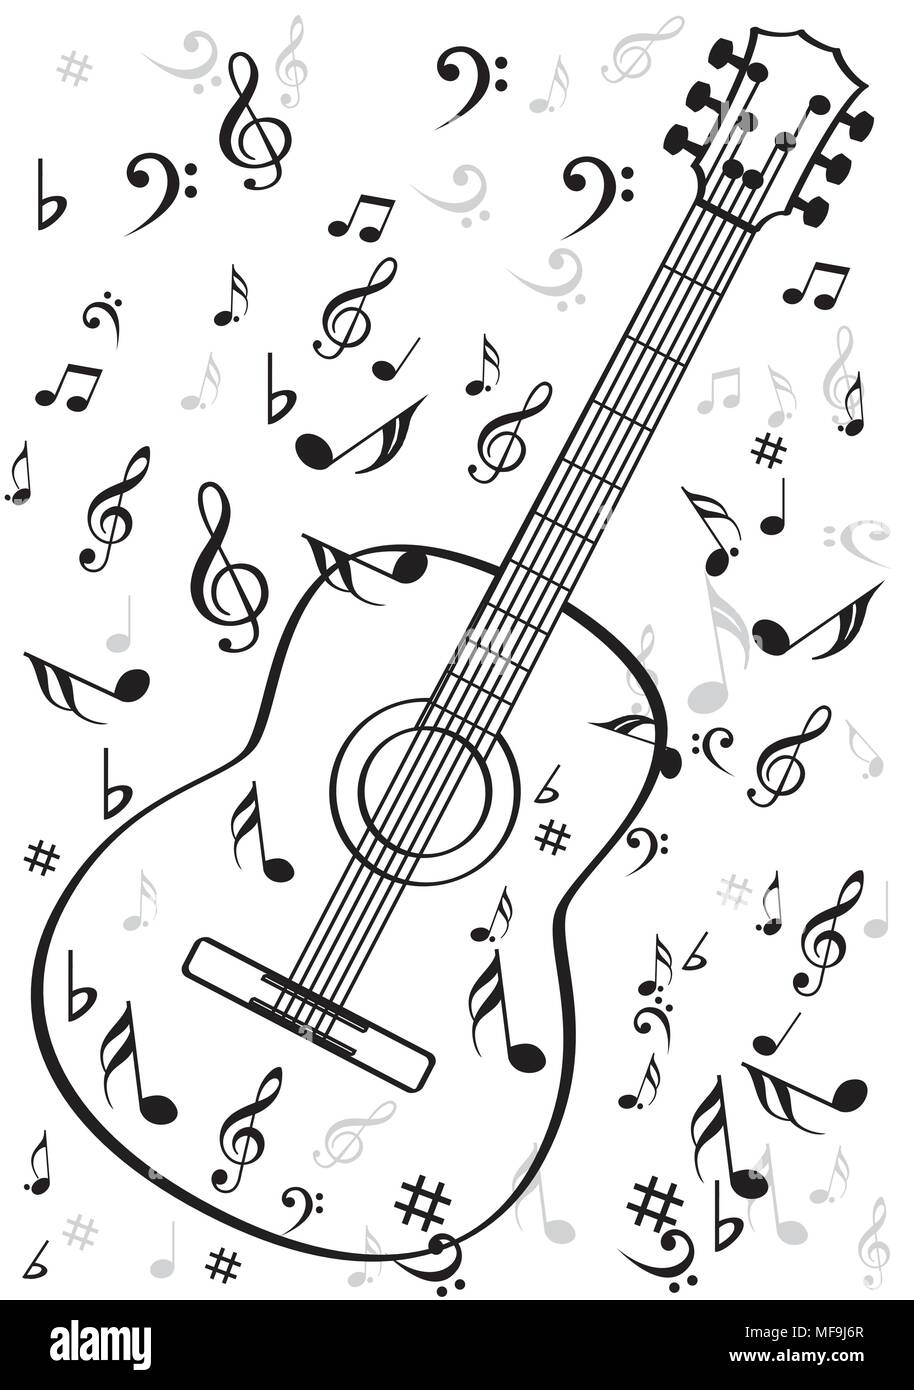 Guitar instrument with music symbols Stock Vector Art & Illustration